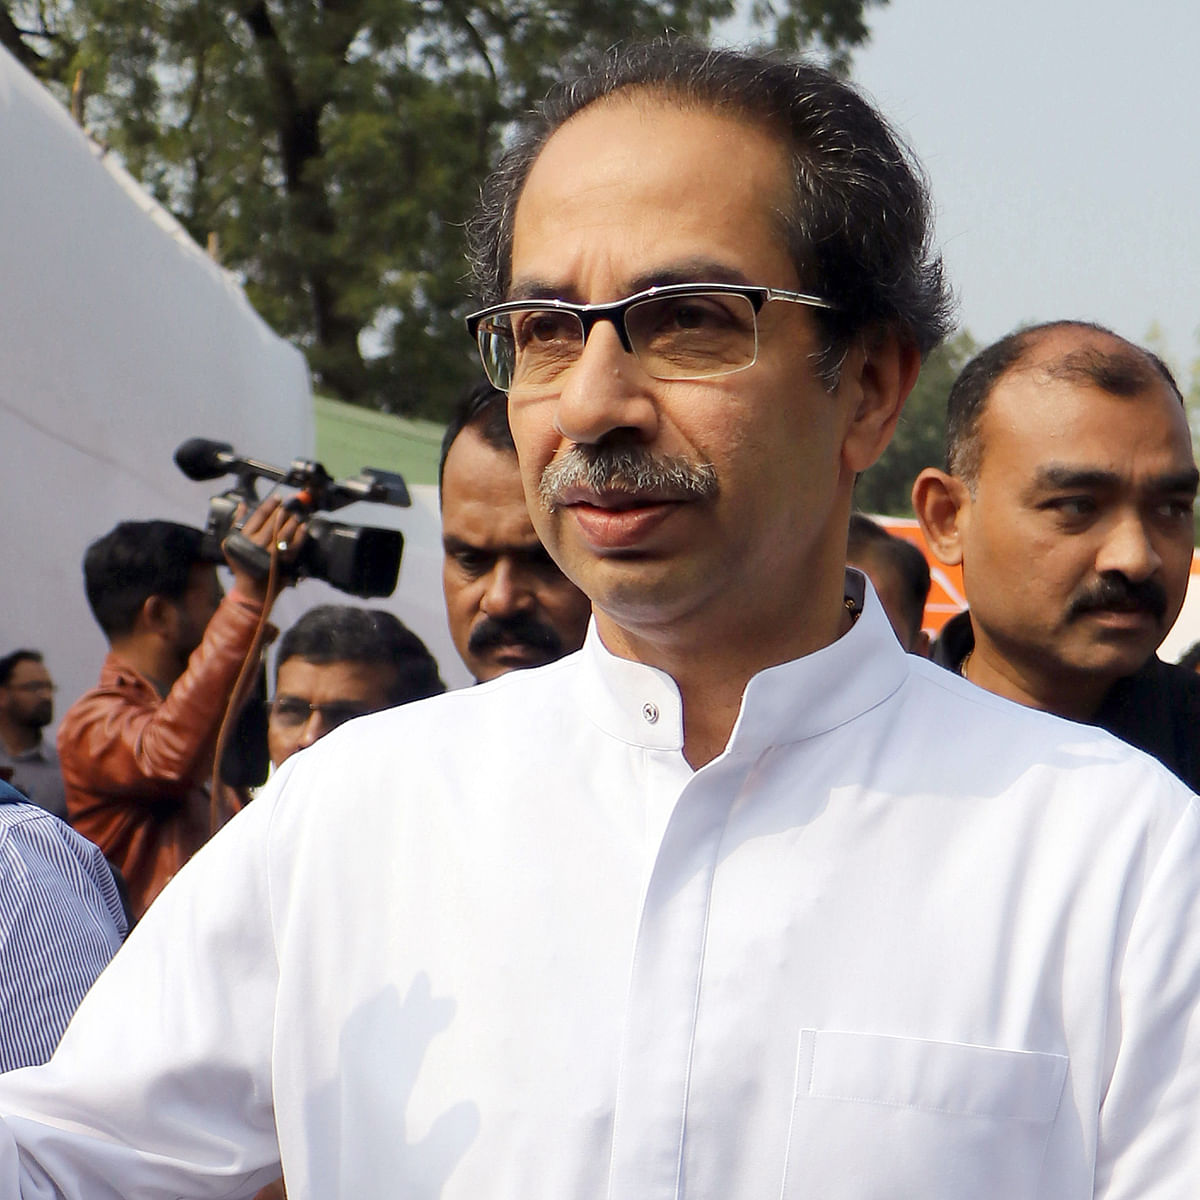 FPJ Exclusive: Refinery on, Shiv Sena eyeing Rs 3 lakh crore investment